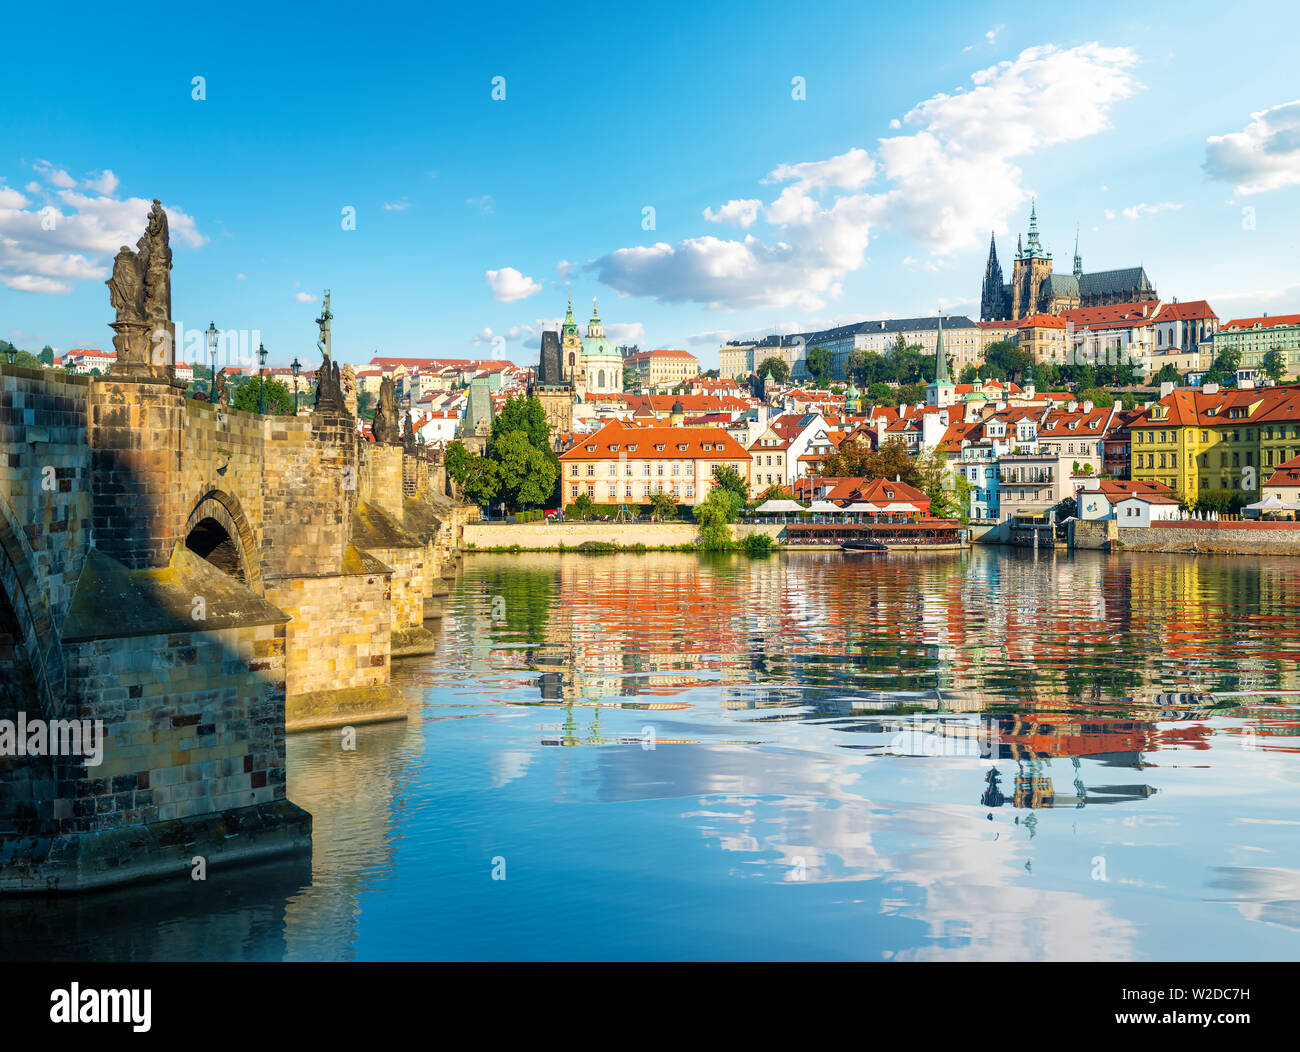 View on Old city and St Vitus Cathedral in Prague - Stock Image